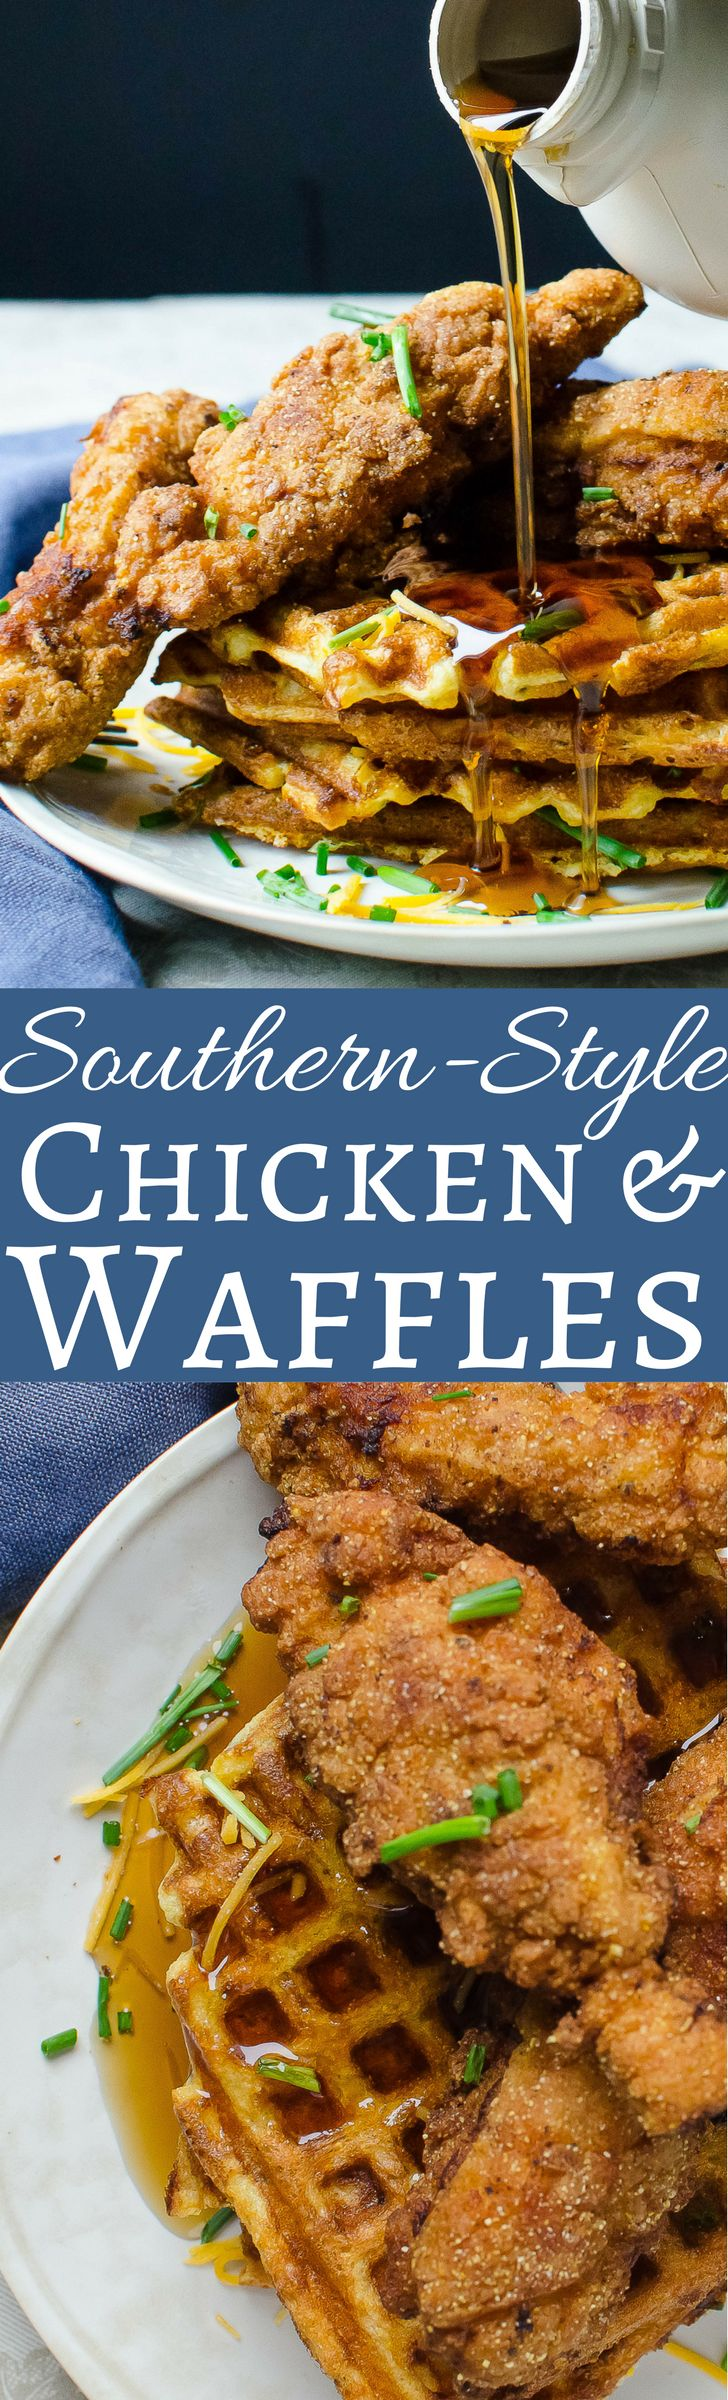 108 best Chicken & waffles images on Pinterest | Cooking food, Fried ...